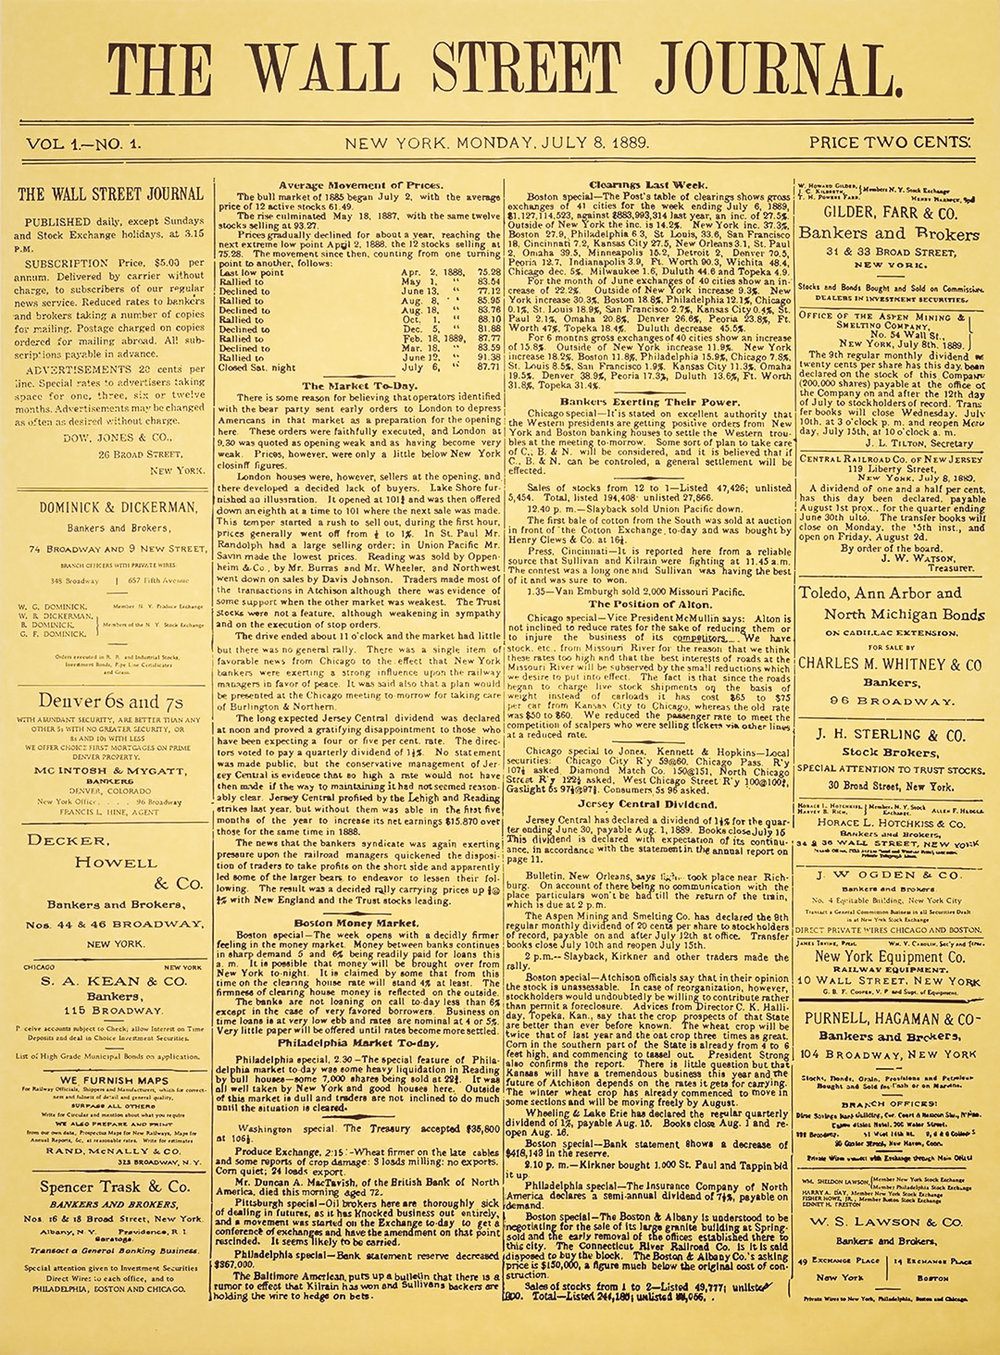 The Wall Street Journal - first edition, New York, Monday, July 8, 1889.